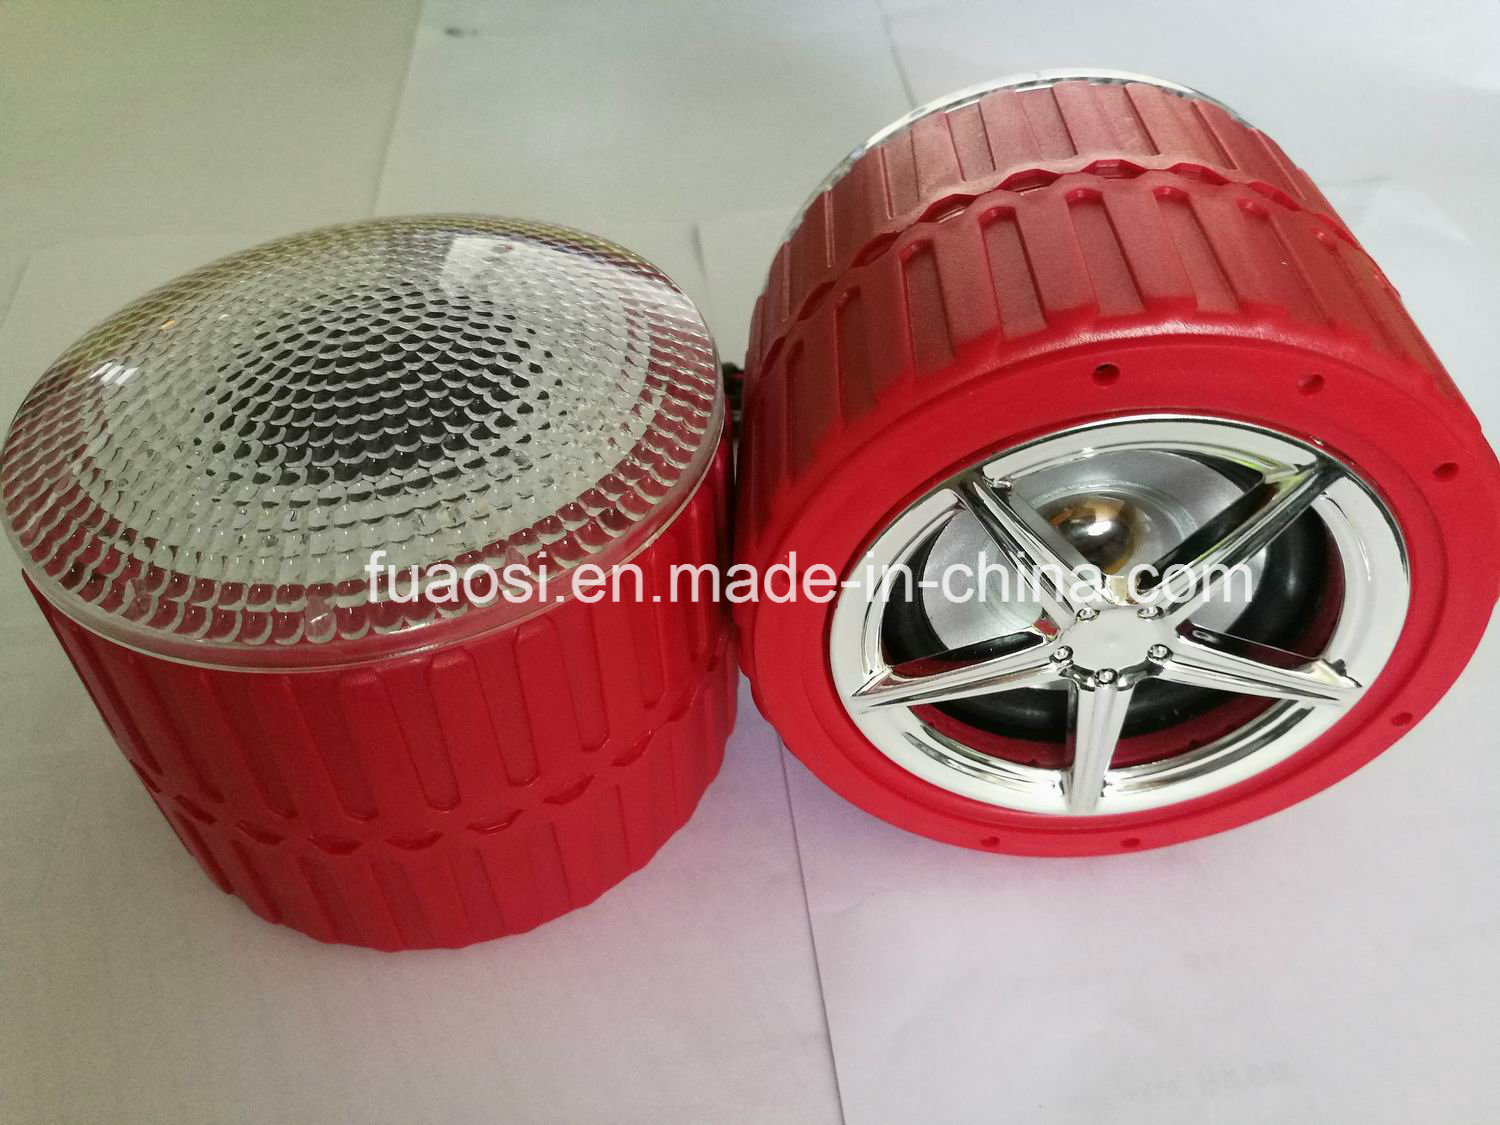 Motorcycle Stereo System MP3 with Wheel Shape